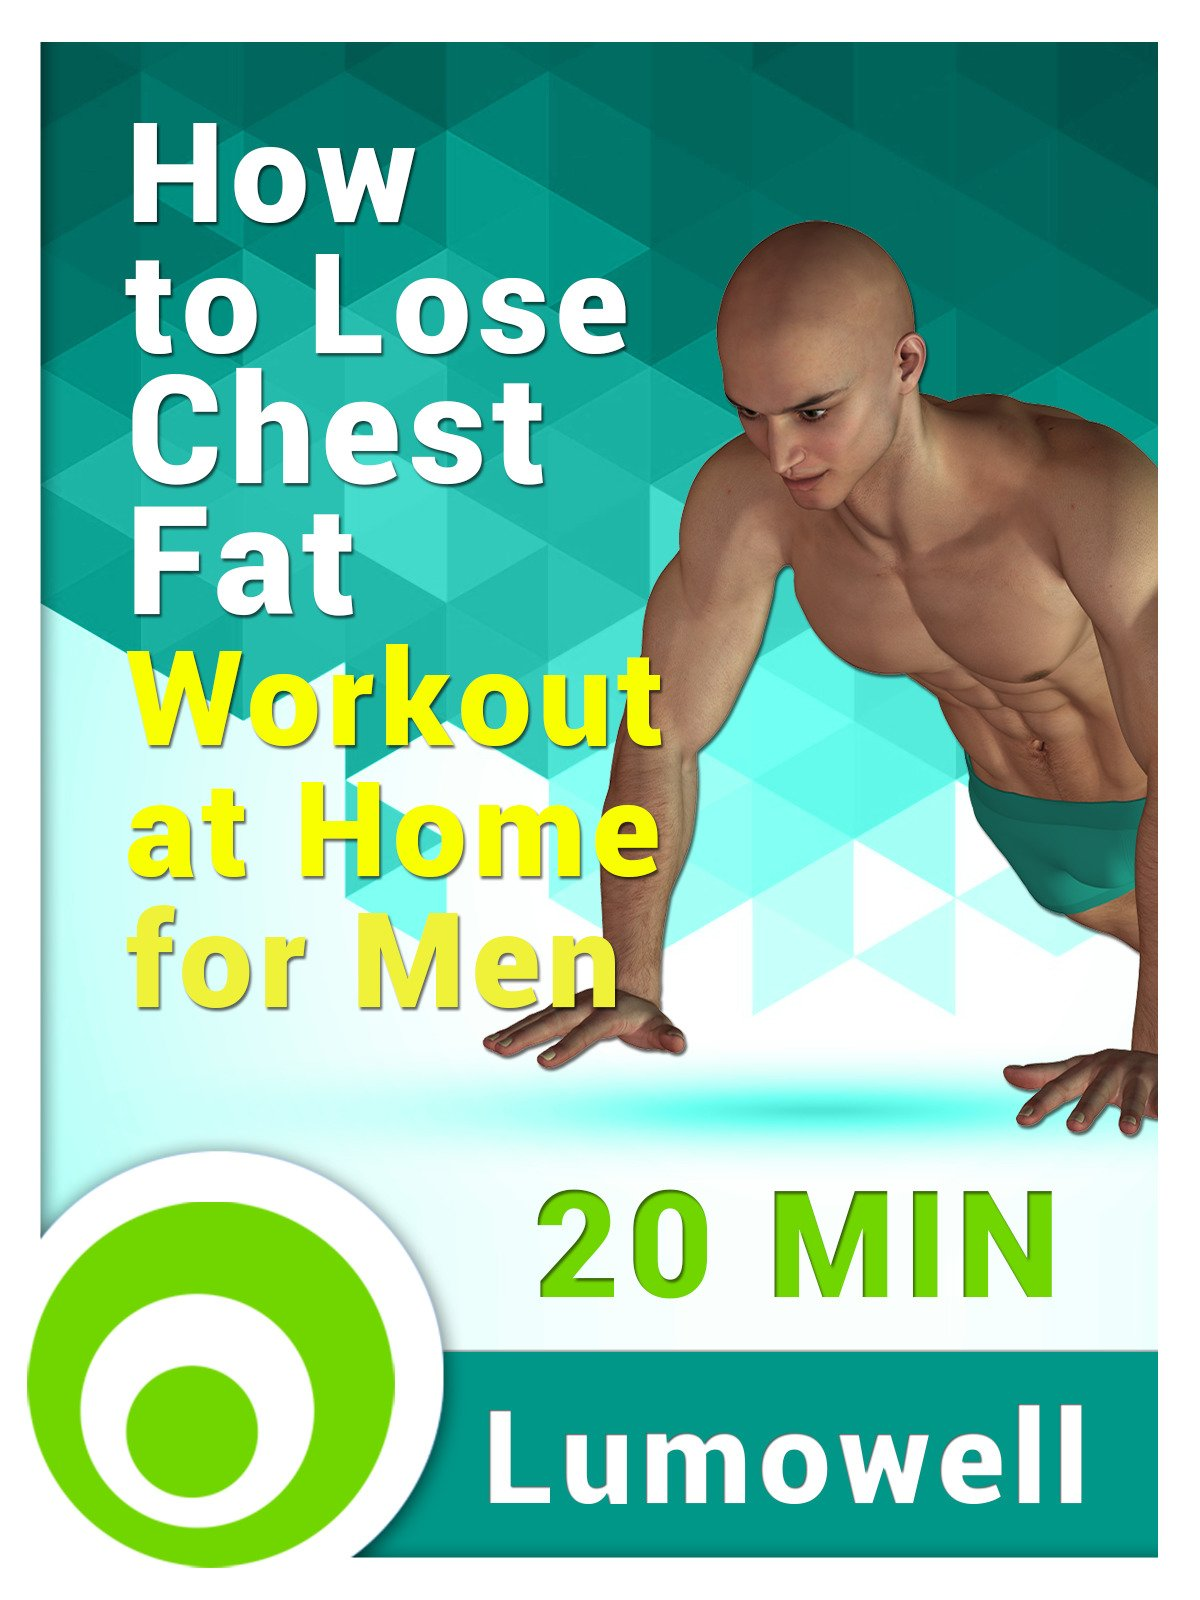 Amazon.de: How to Lose Chest Fat Workout at Home for Men [OV